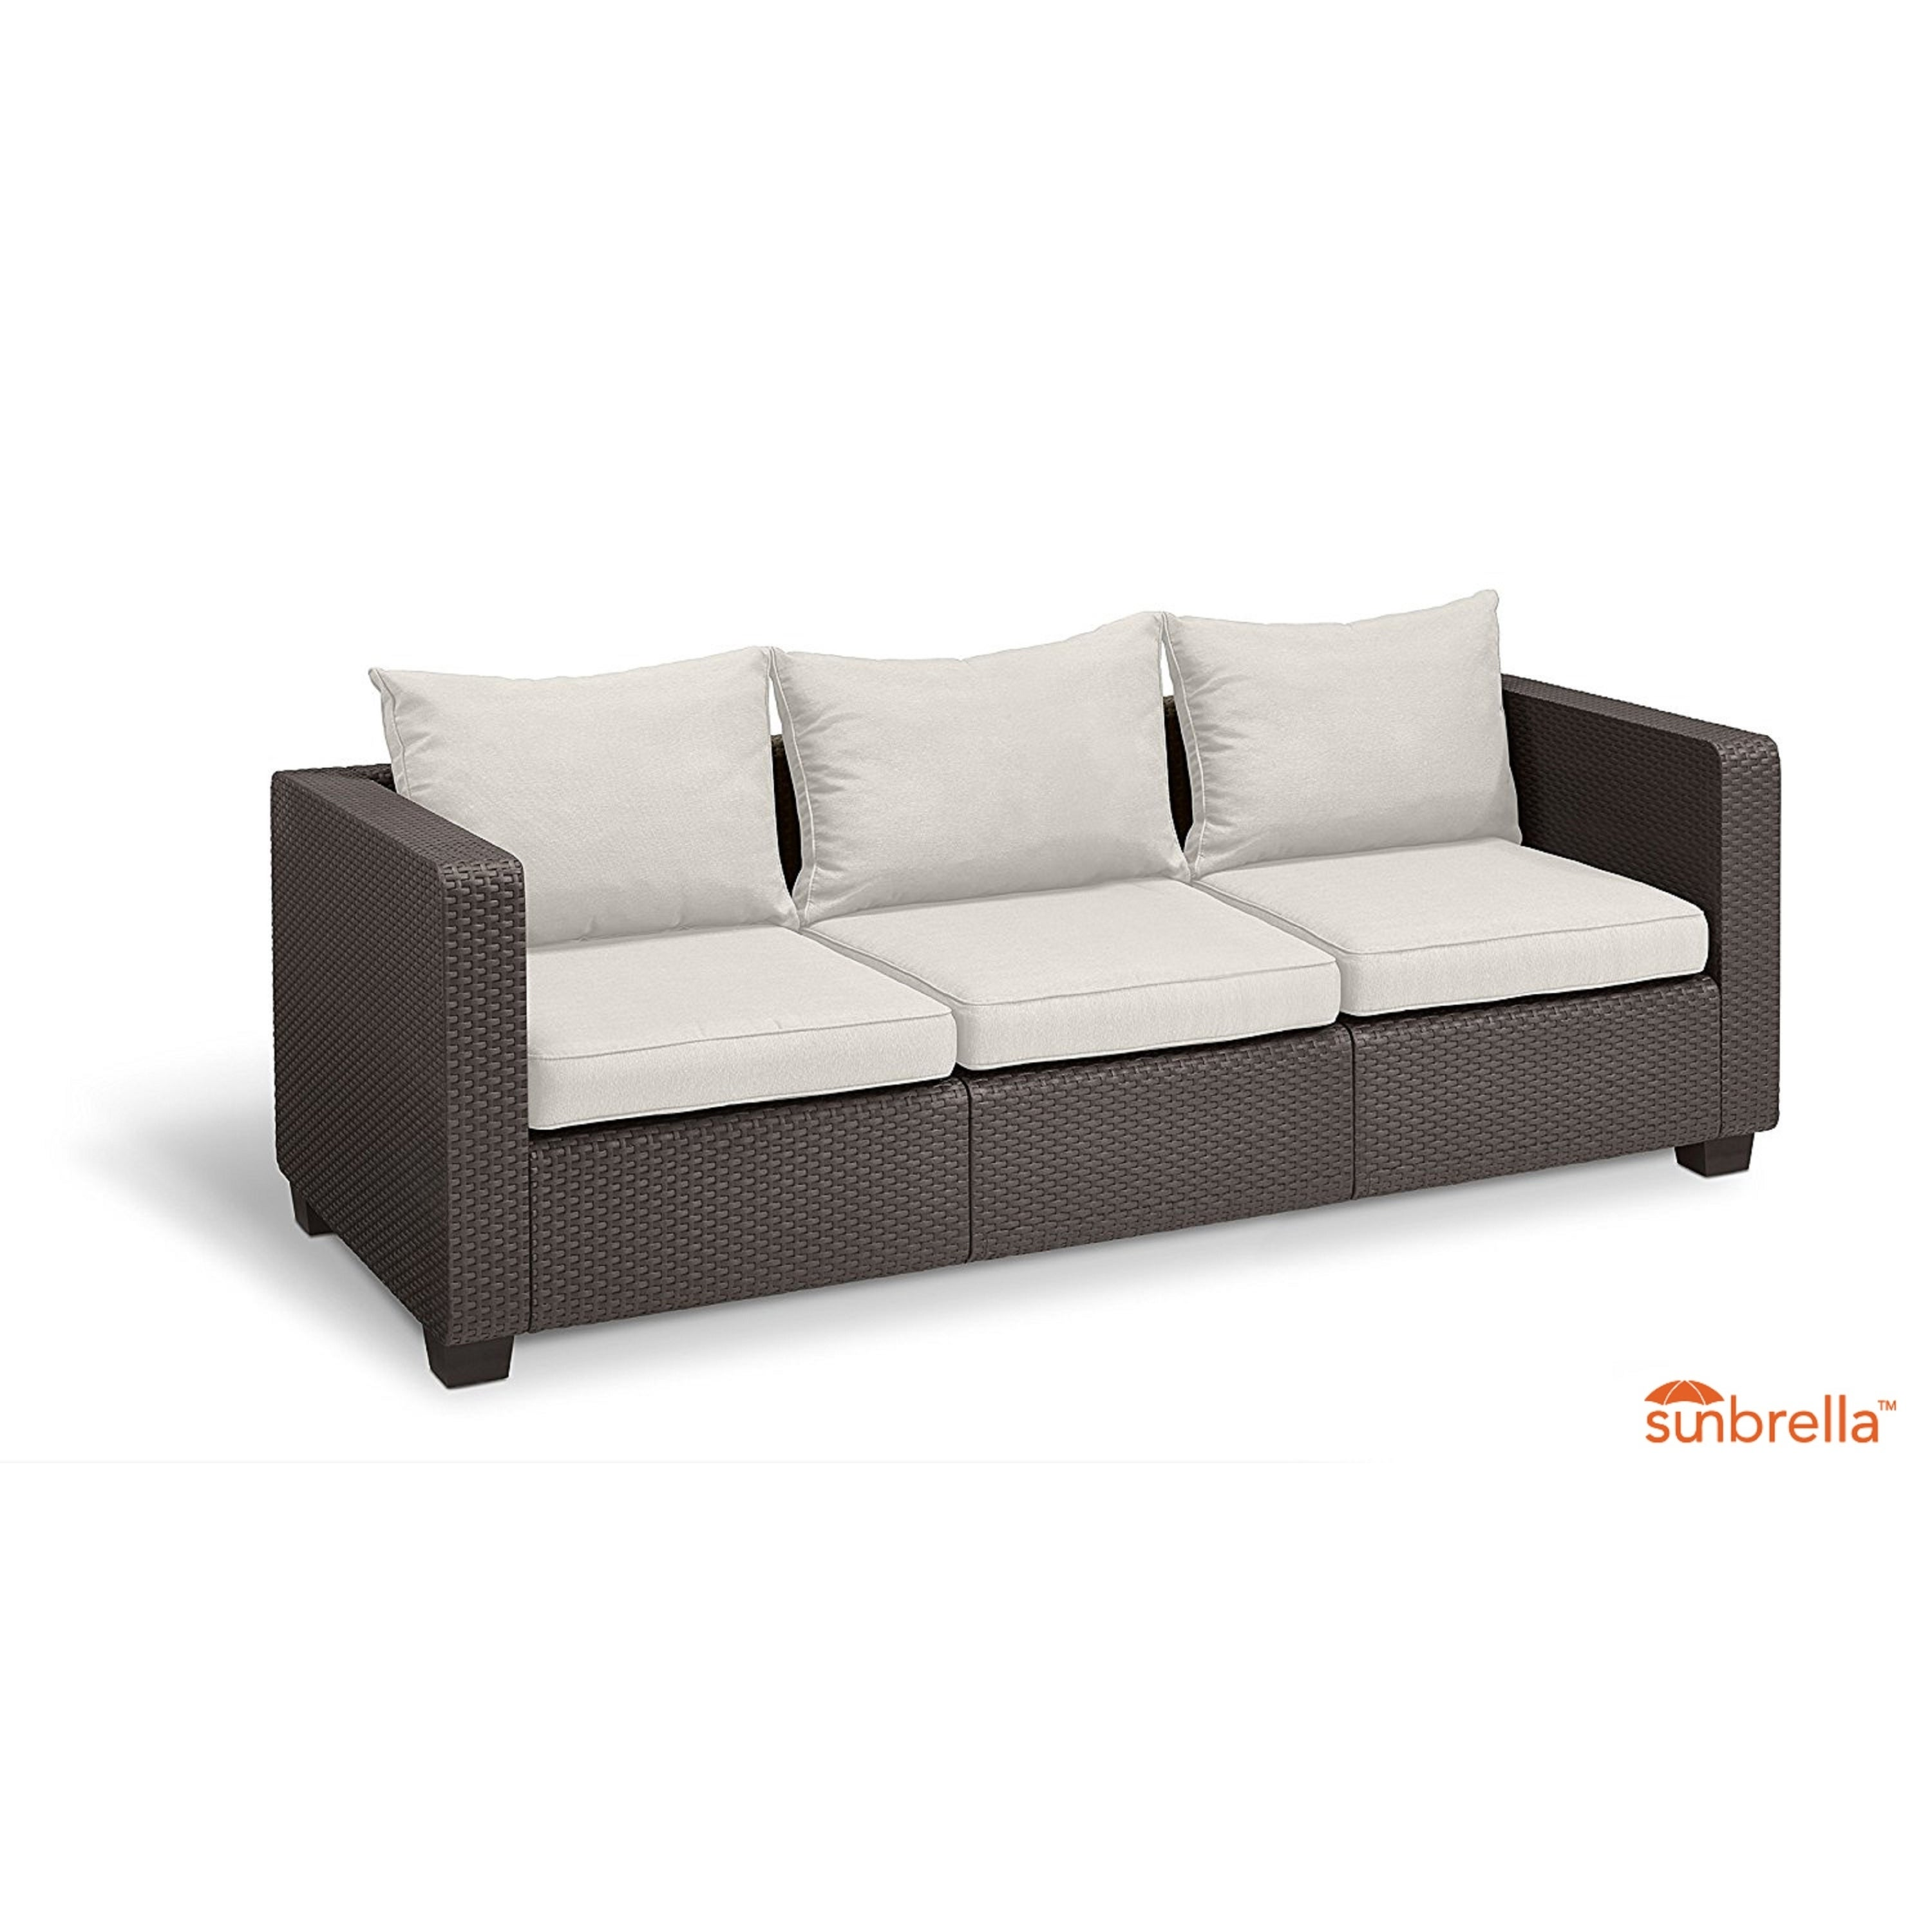 Awesome Keter Salta 3 Seat All Weather Outdoor Patio Sofa With Sunbrella Cushions